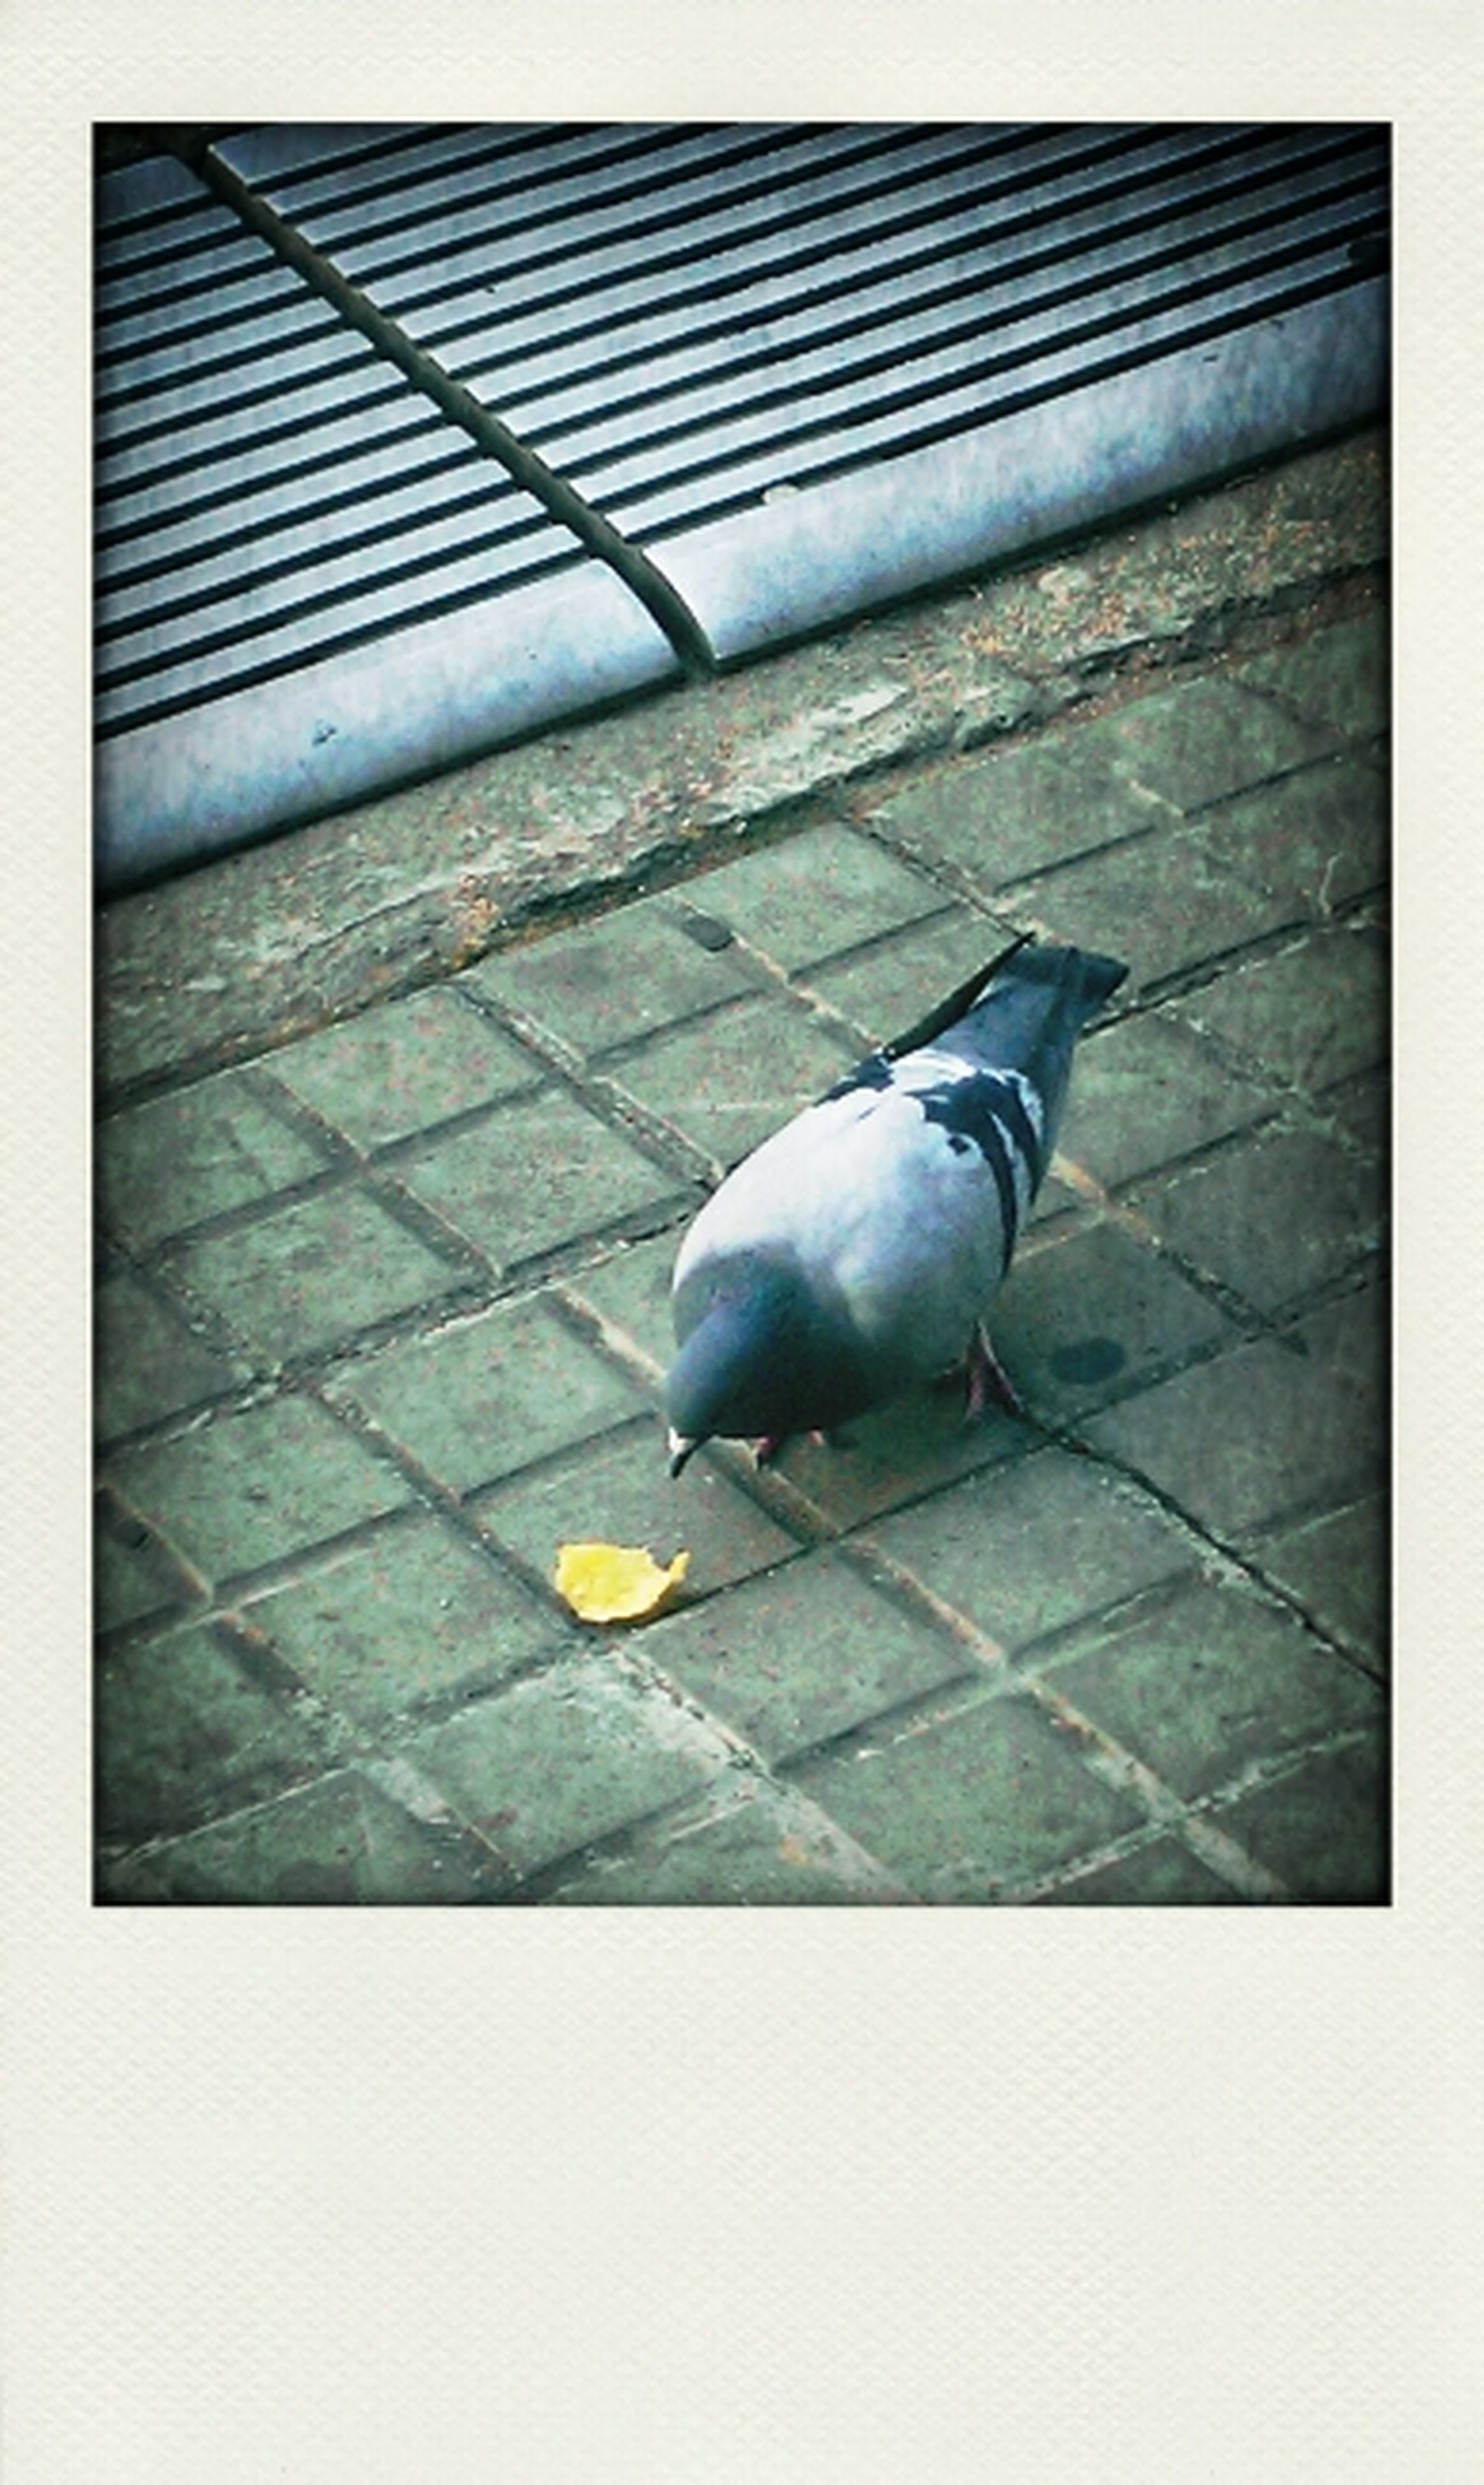 animal themes, bird, one animal, transfer print, wildlife, animals in the wild, pigeon, auto post production filter, high angle view, shadow, sunlight, full length, seagull, outdoors, day, no people, perching, zoology, street, side view